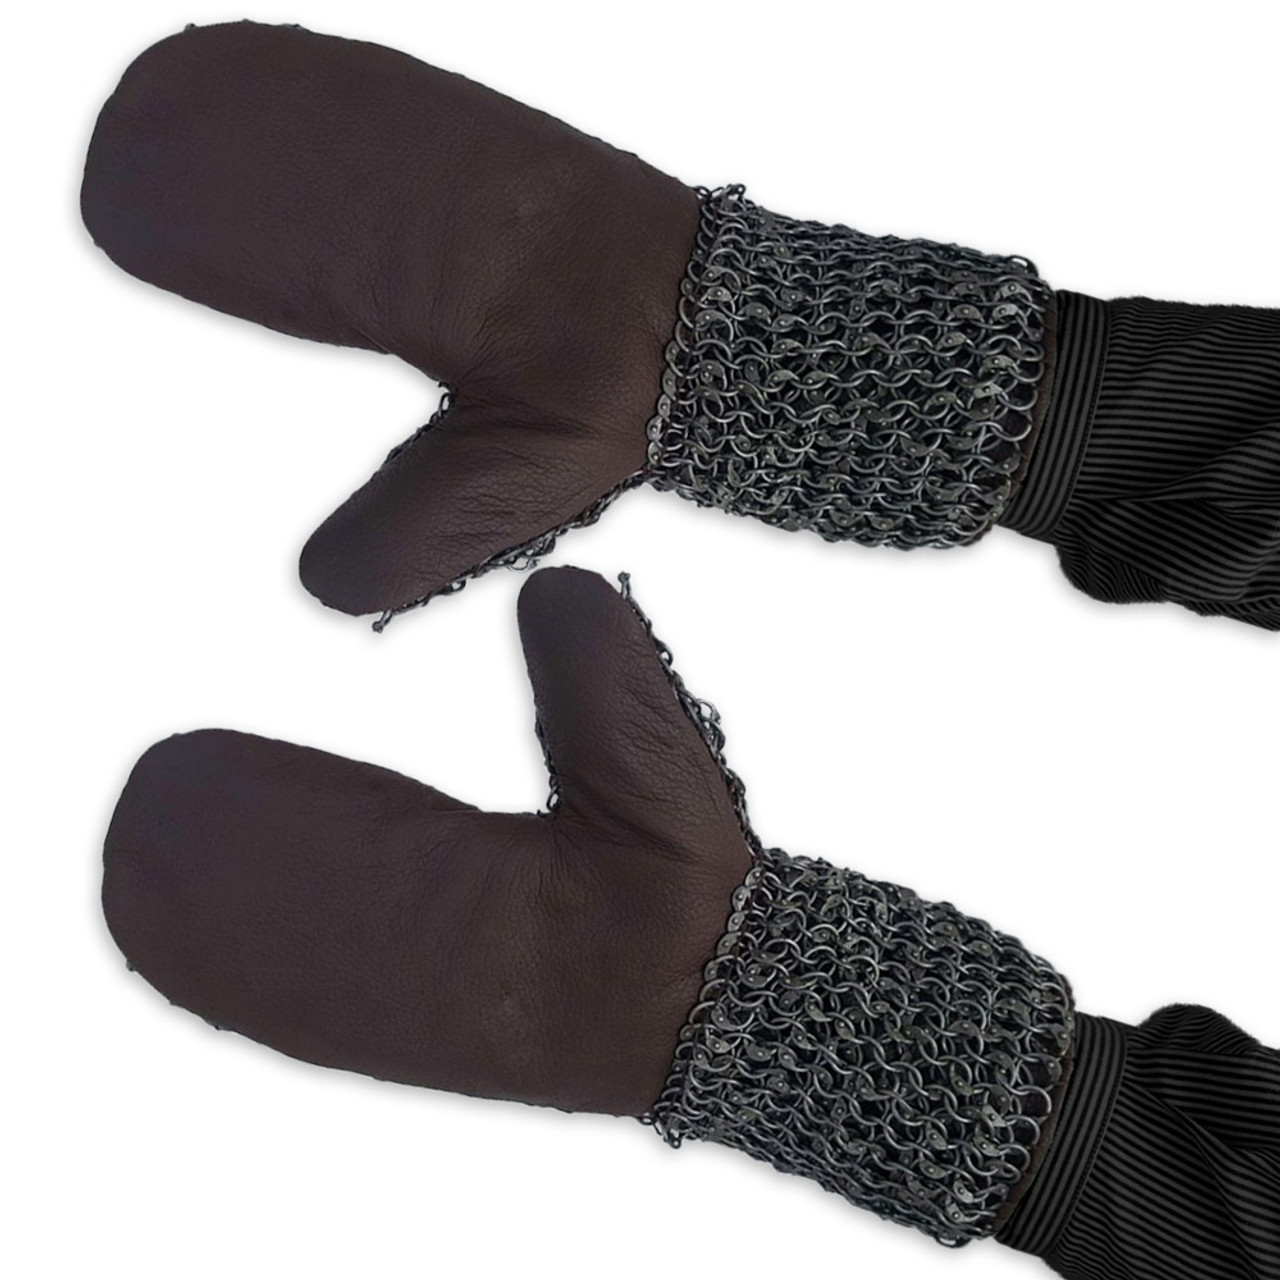 Medieval Riveted Chainmail Padded Gauntlets Gloves Mittens 16ga Carbon Steel